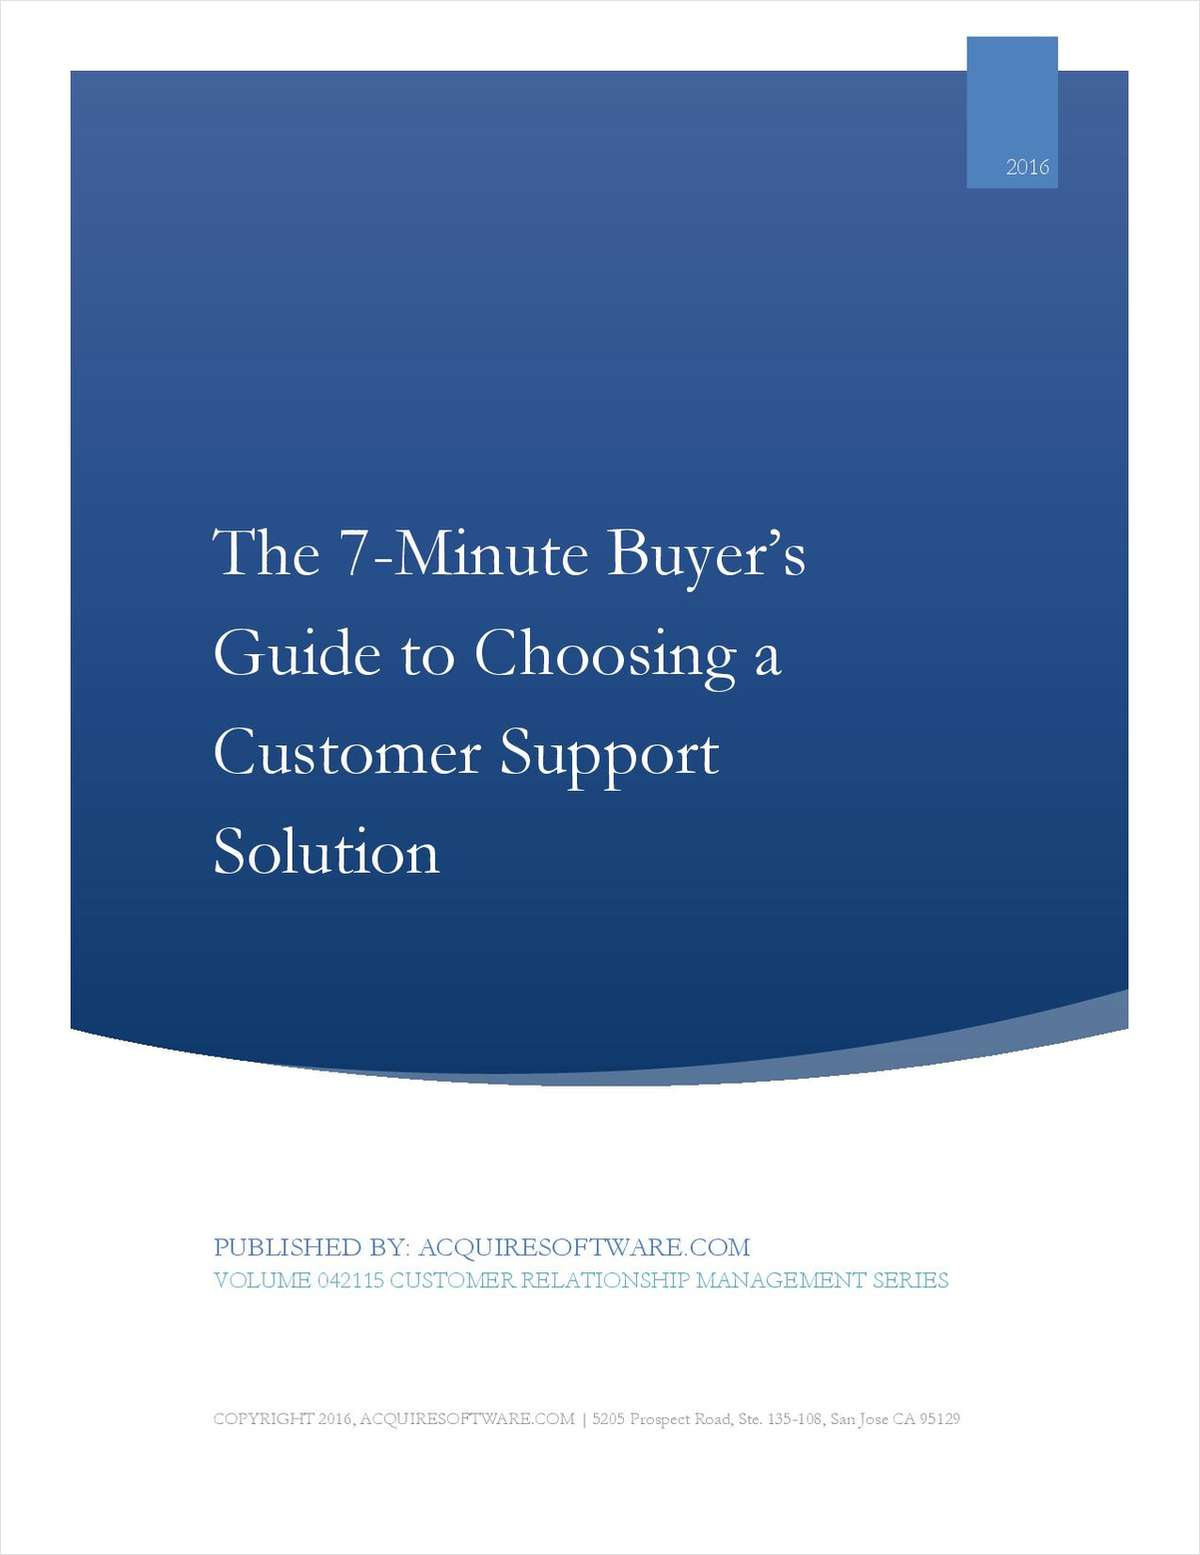 7-Minute Buyer's Guide: Selecting the Right Customer Support and Helpdesk Solution. Effective customer support, issue tracking, and helpdesk platforms